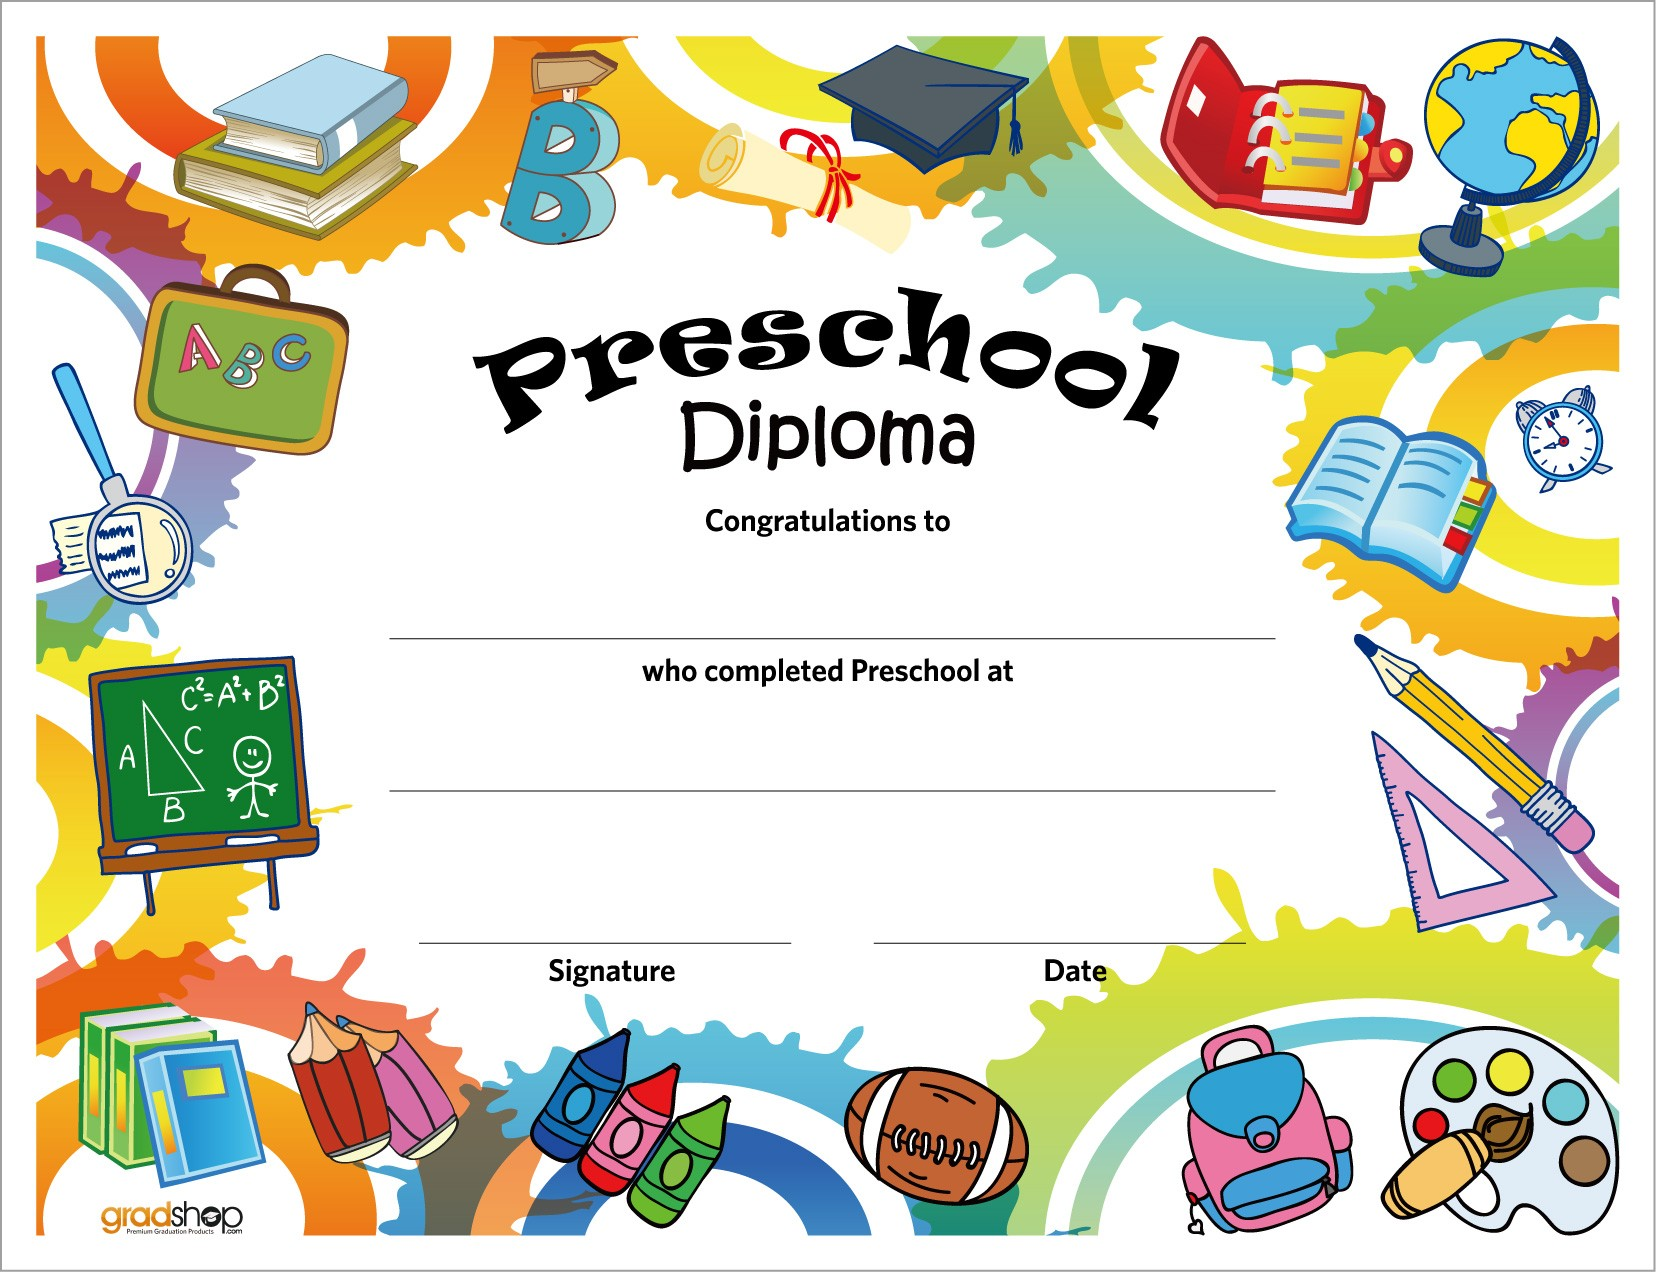 preschool diploma double click on above image to view full picture